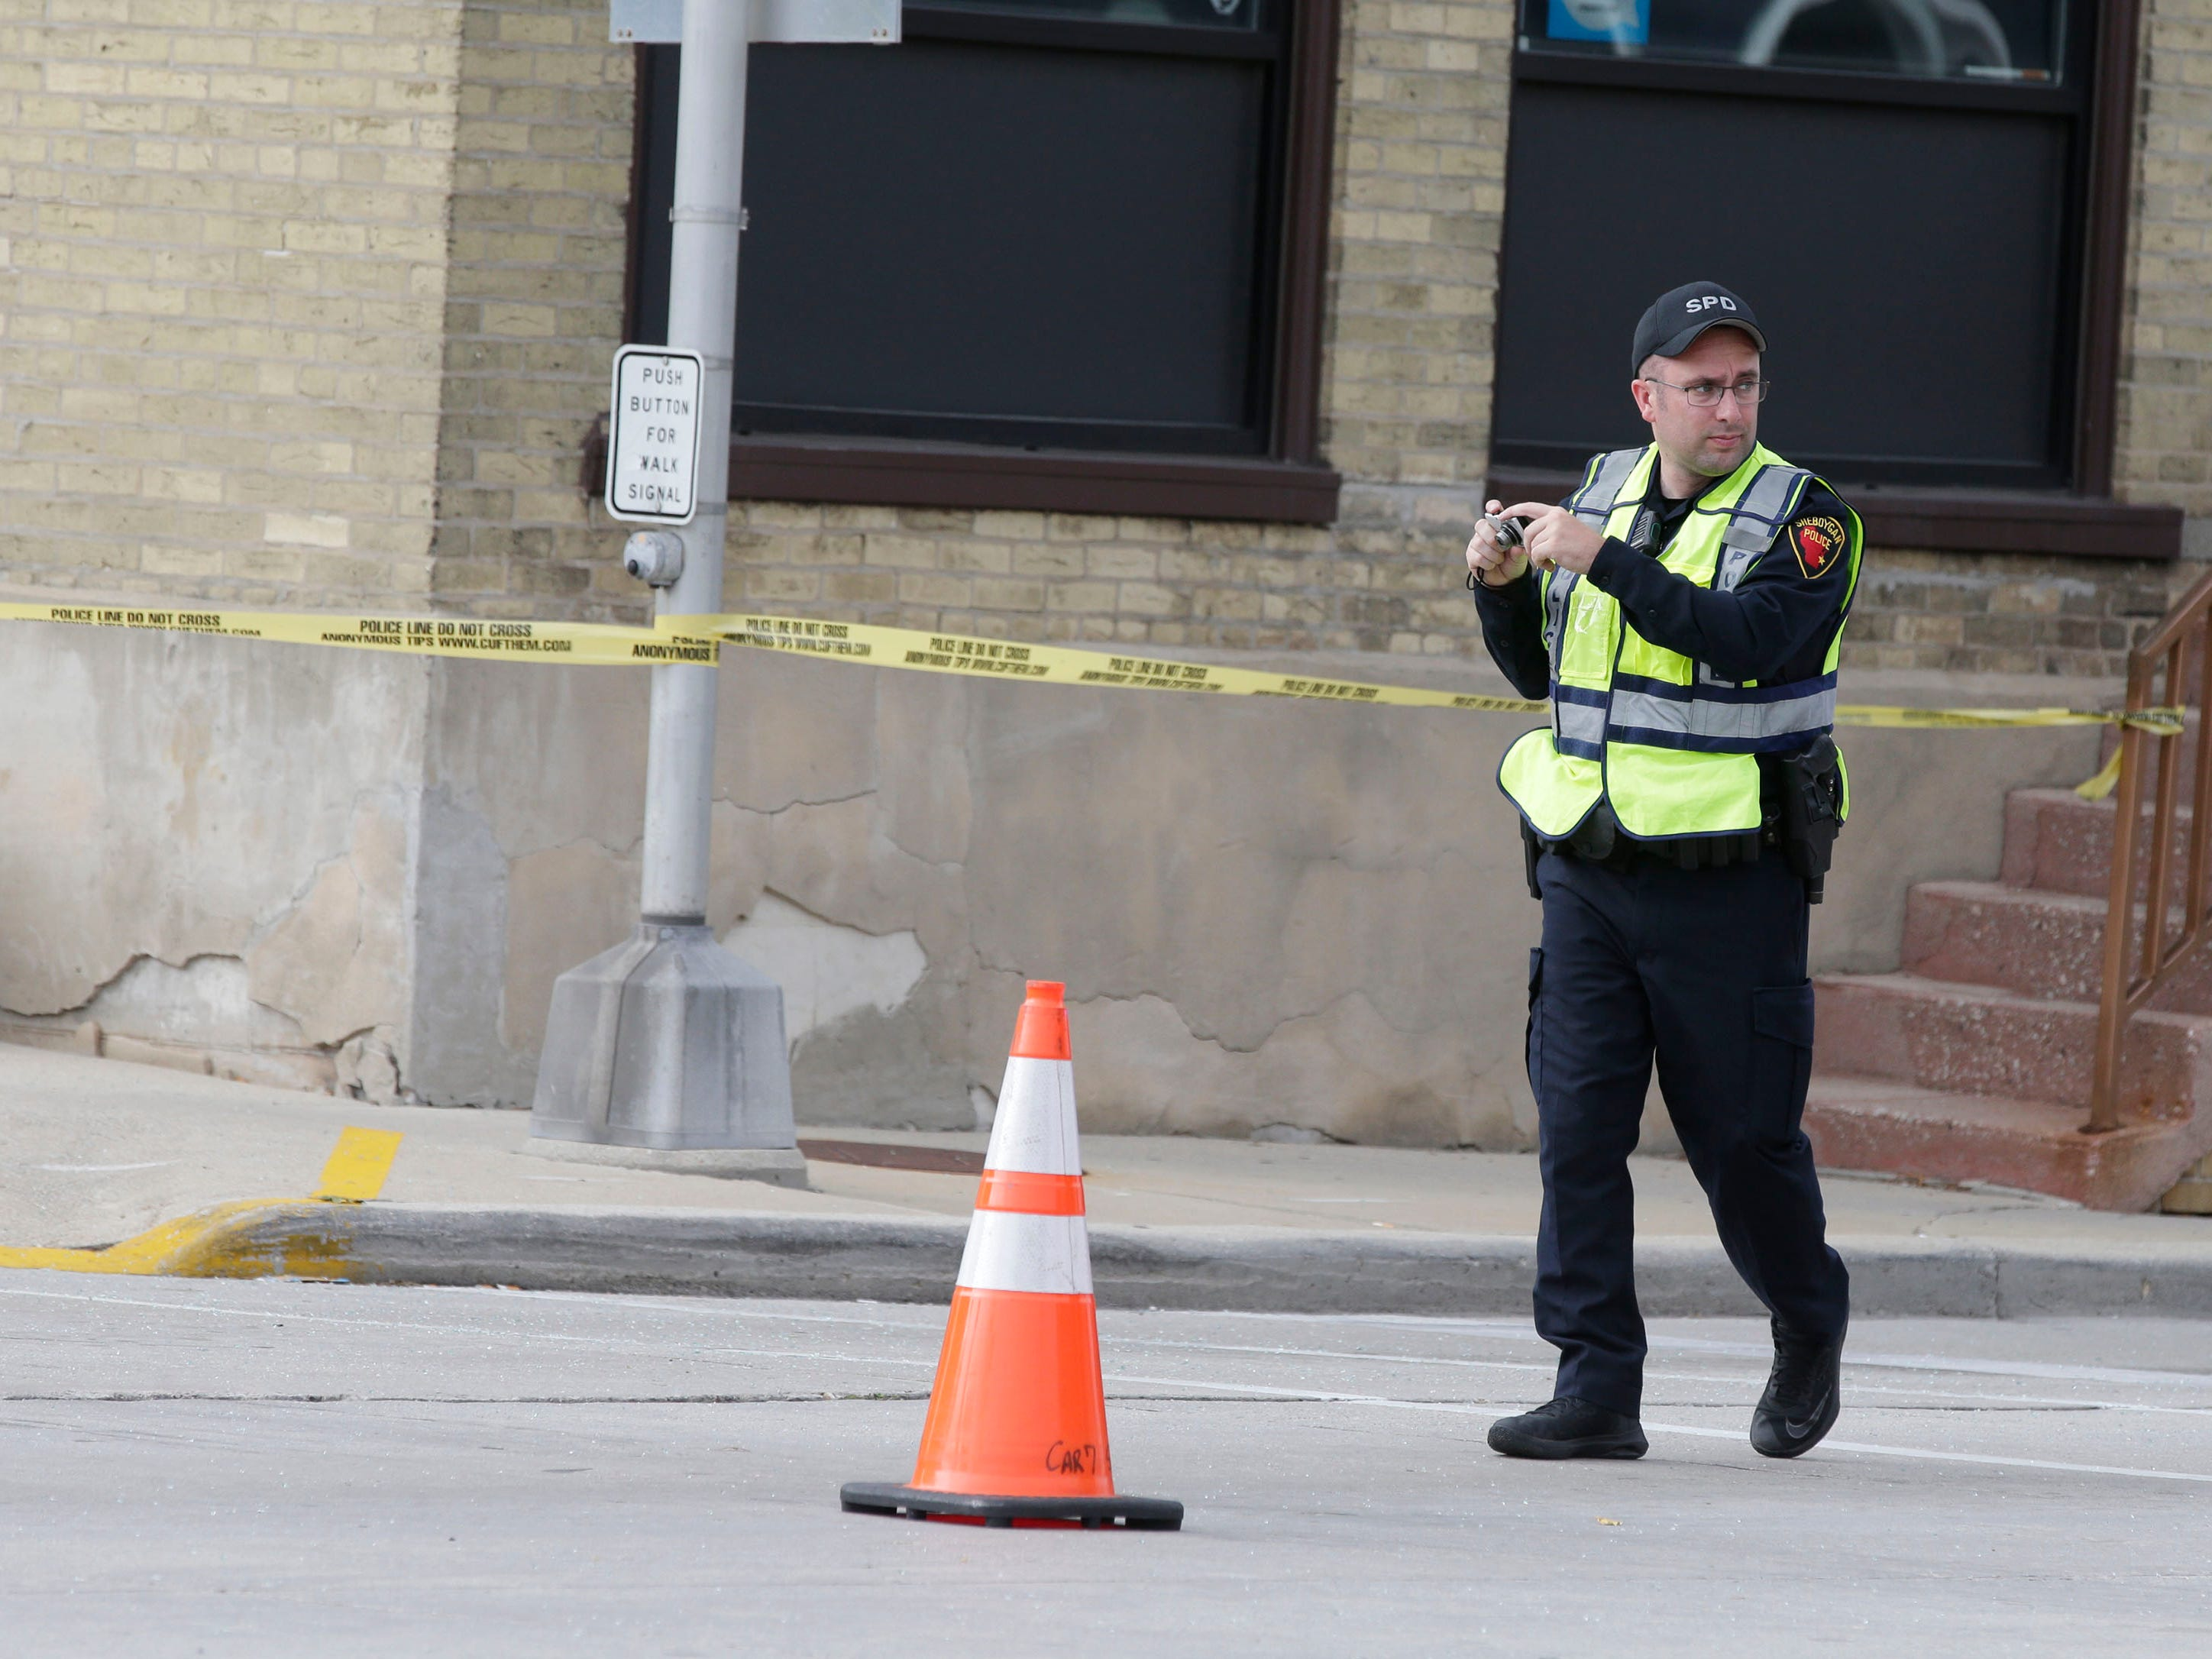 A Sheboygan police officer looks before taking photos at the scene of a 2-car crash on Pennsylvania Avenue between 14th and 15th streets, Tuesday, September 18, 2018, in Sheboygan, Wis. A third parked car was also struck. Two people died as a result of the crash.